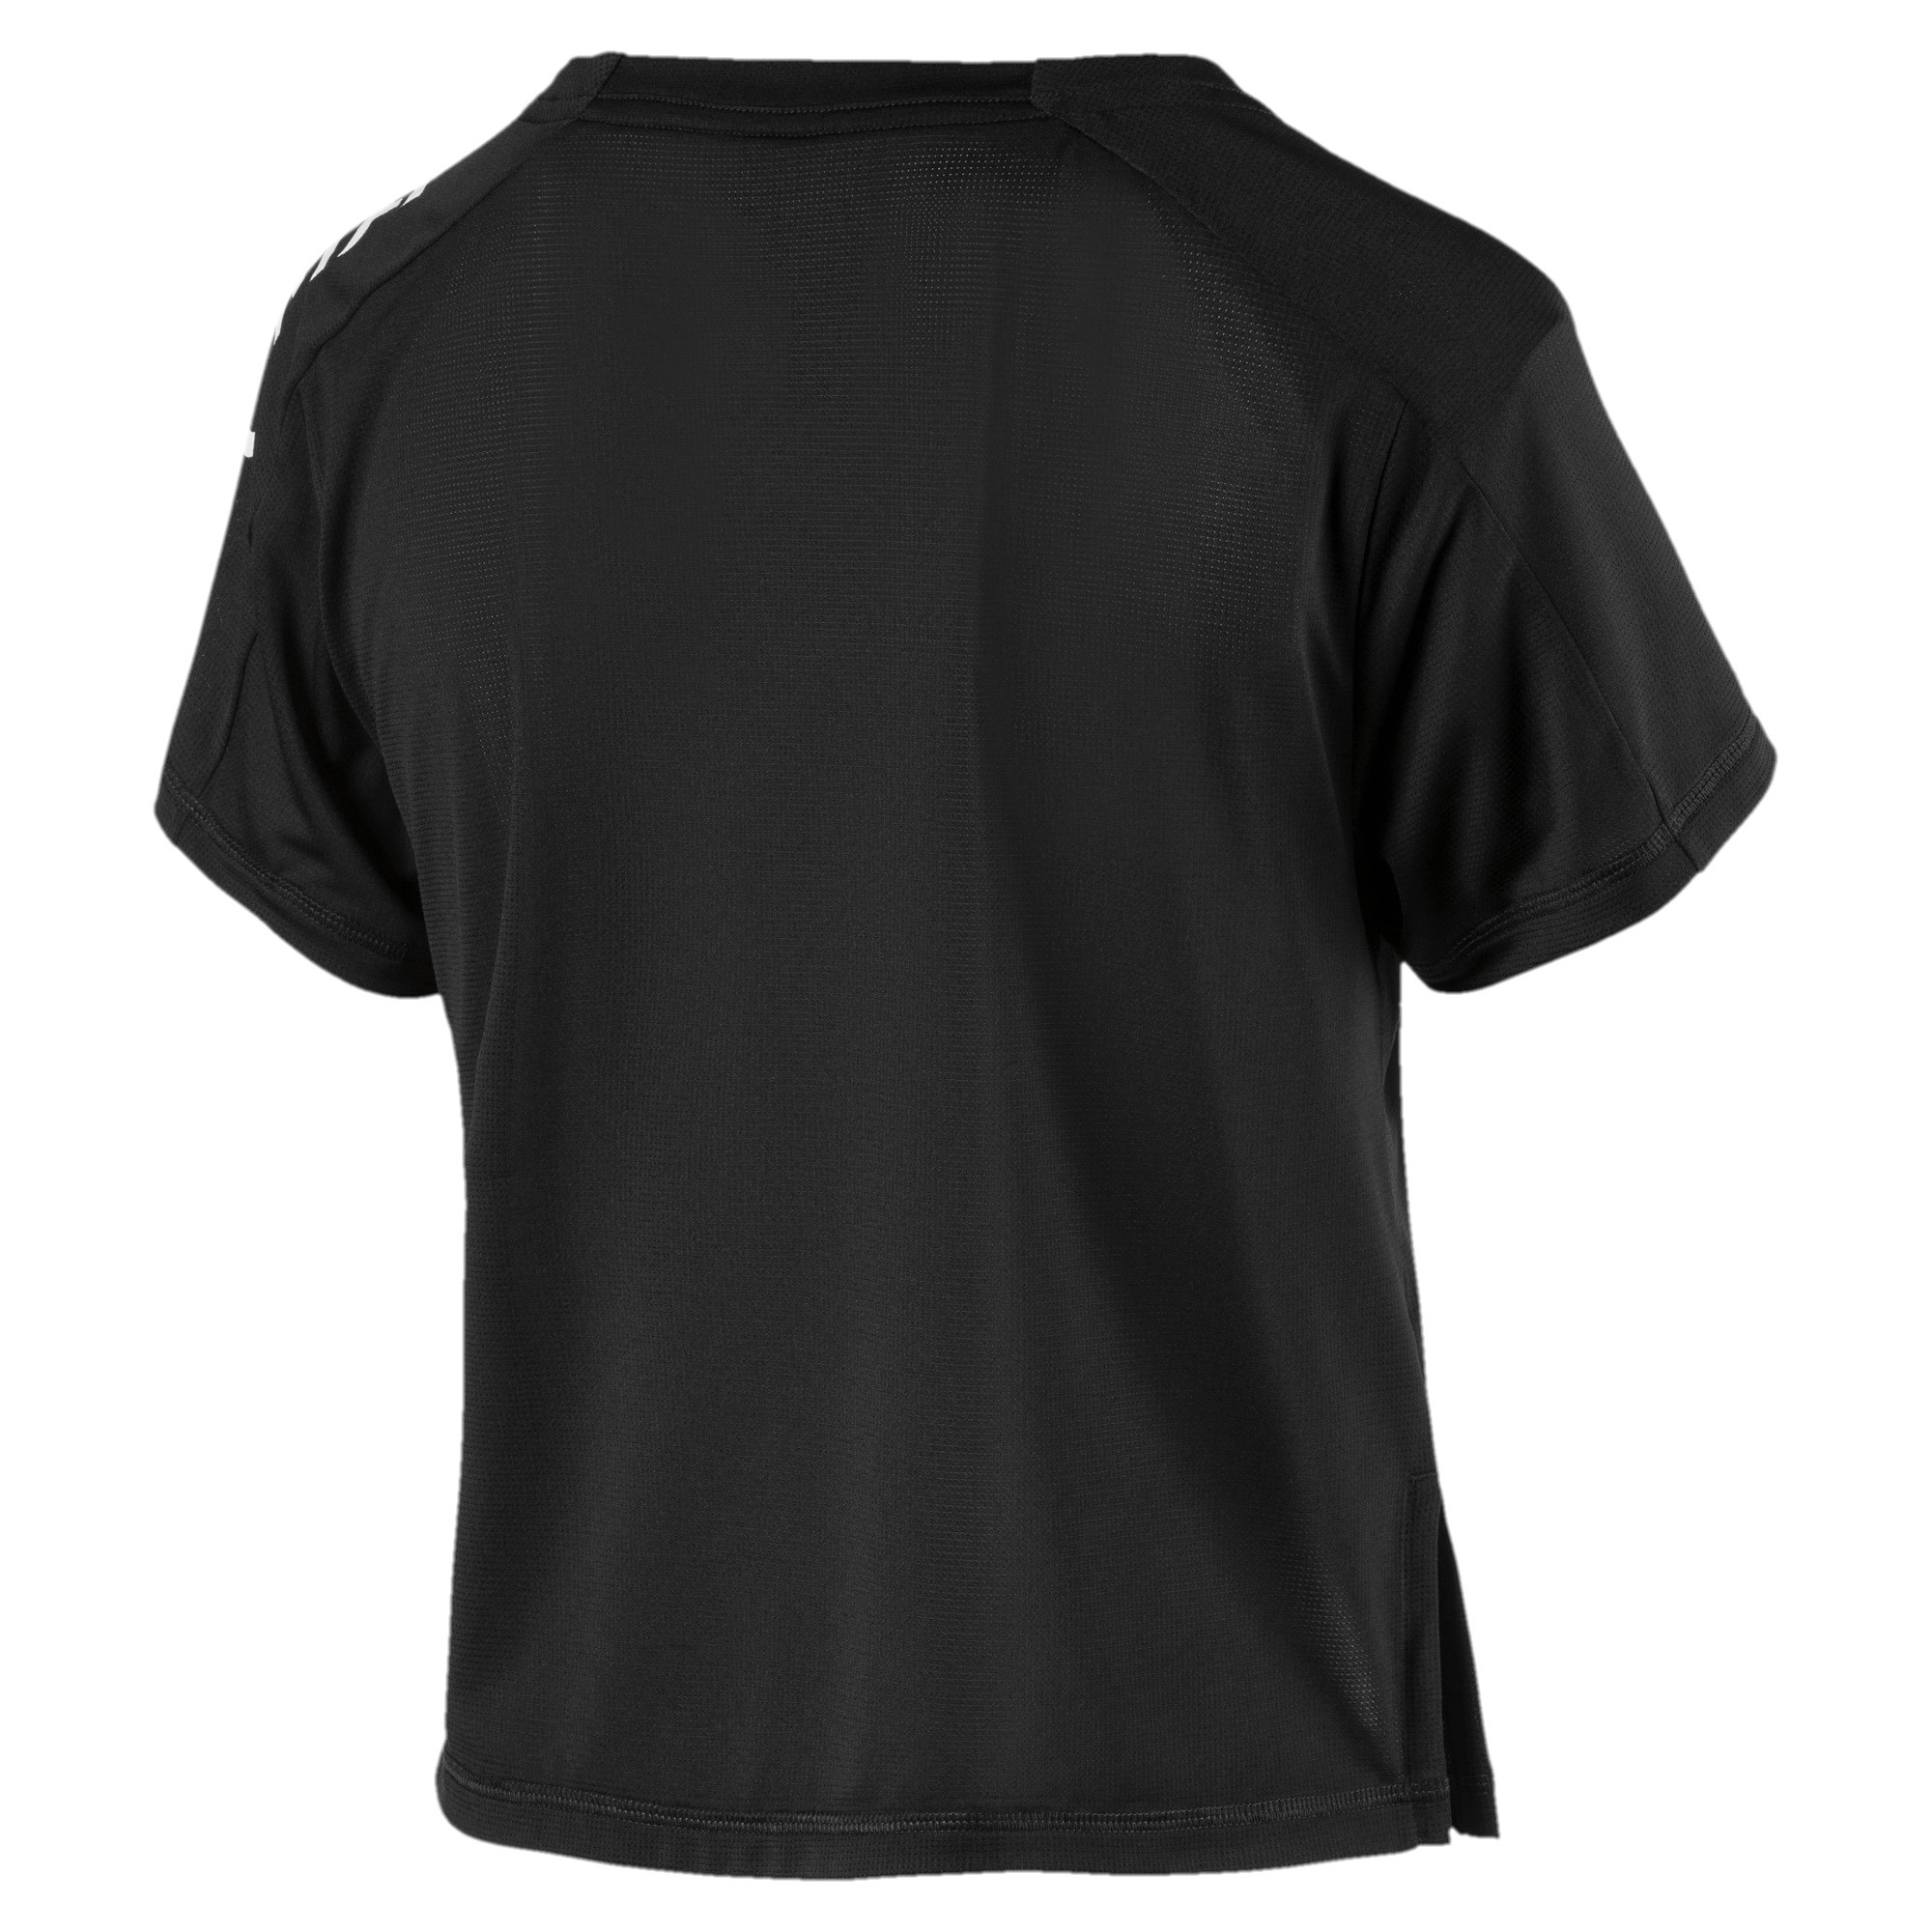 PUMA-Logo-Graphic-Women-039-s-Tee-Women-Tee-Training thumbnail 8